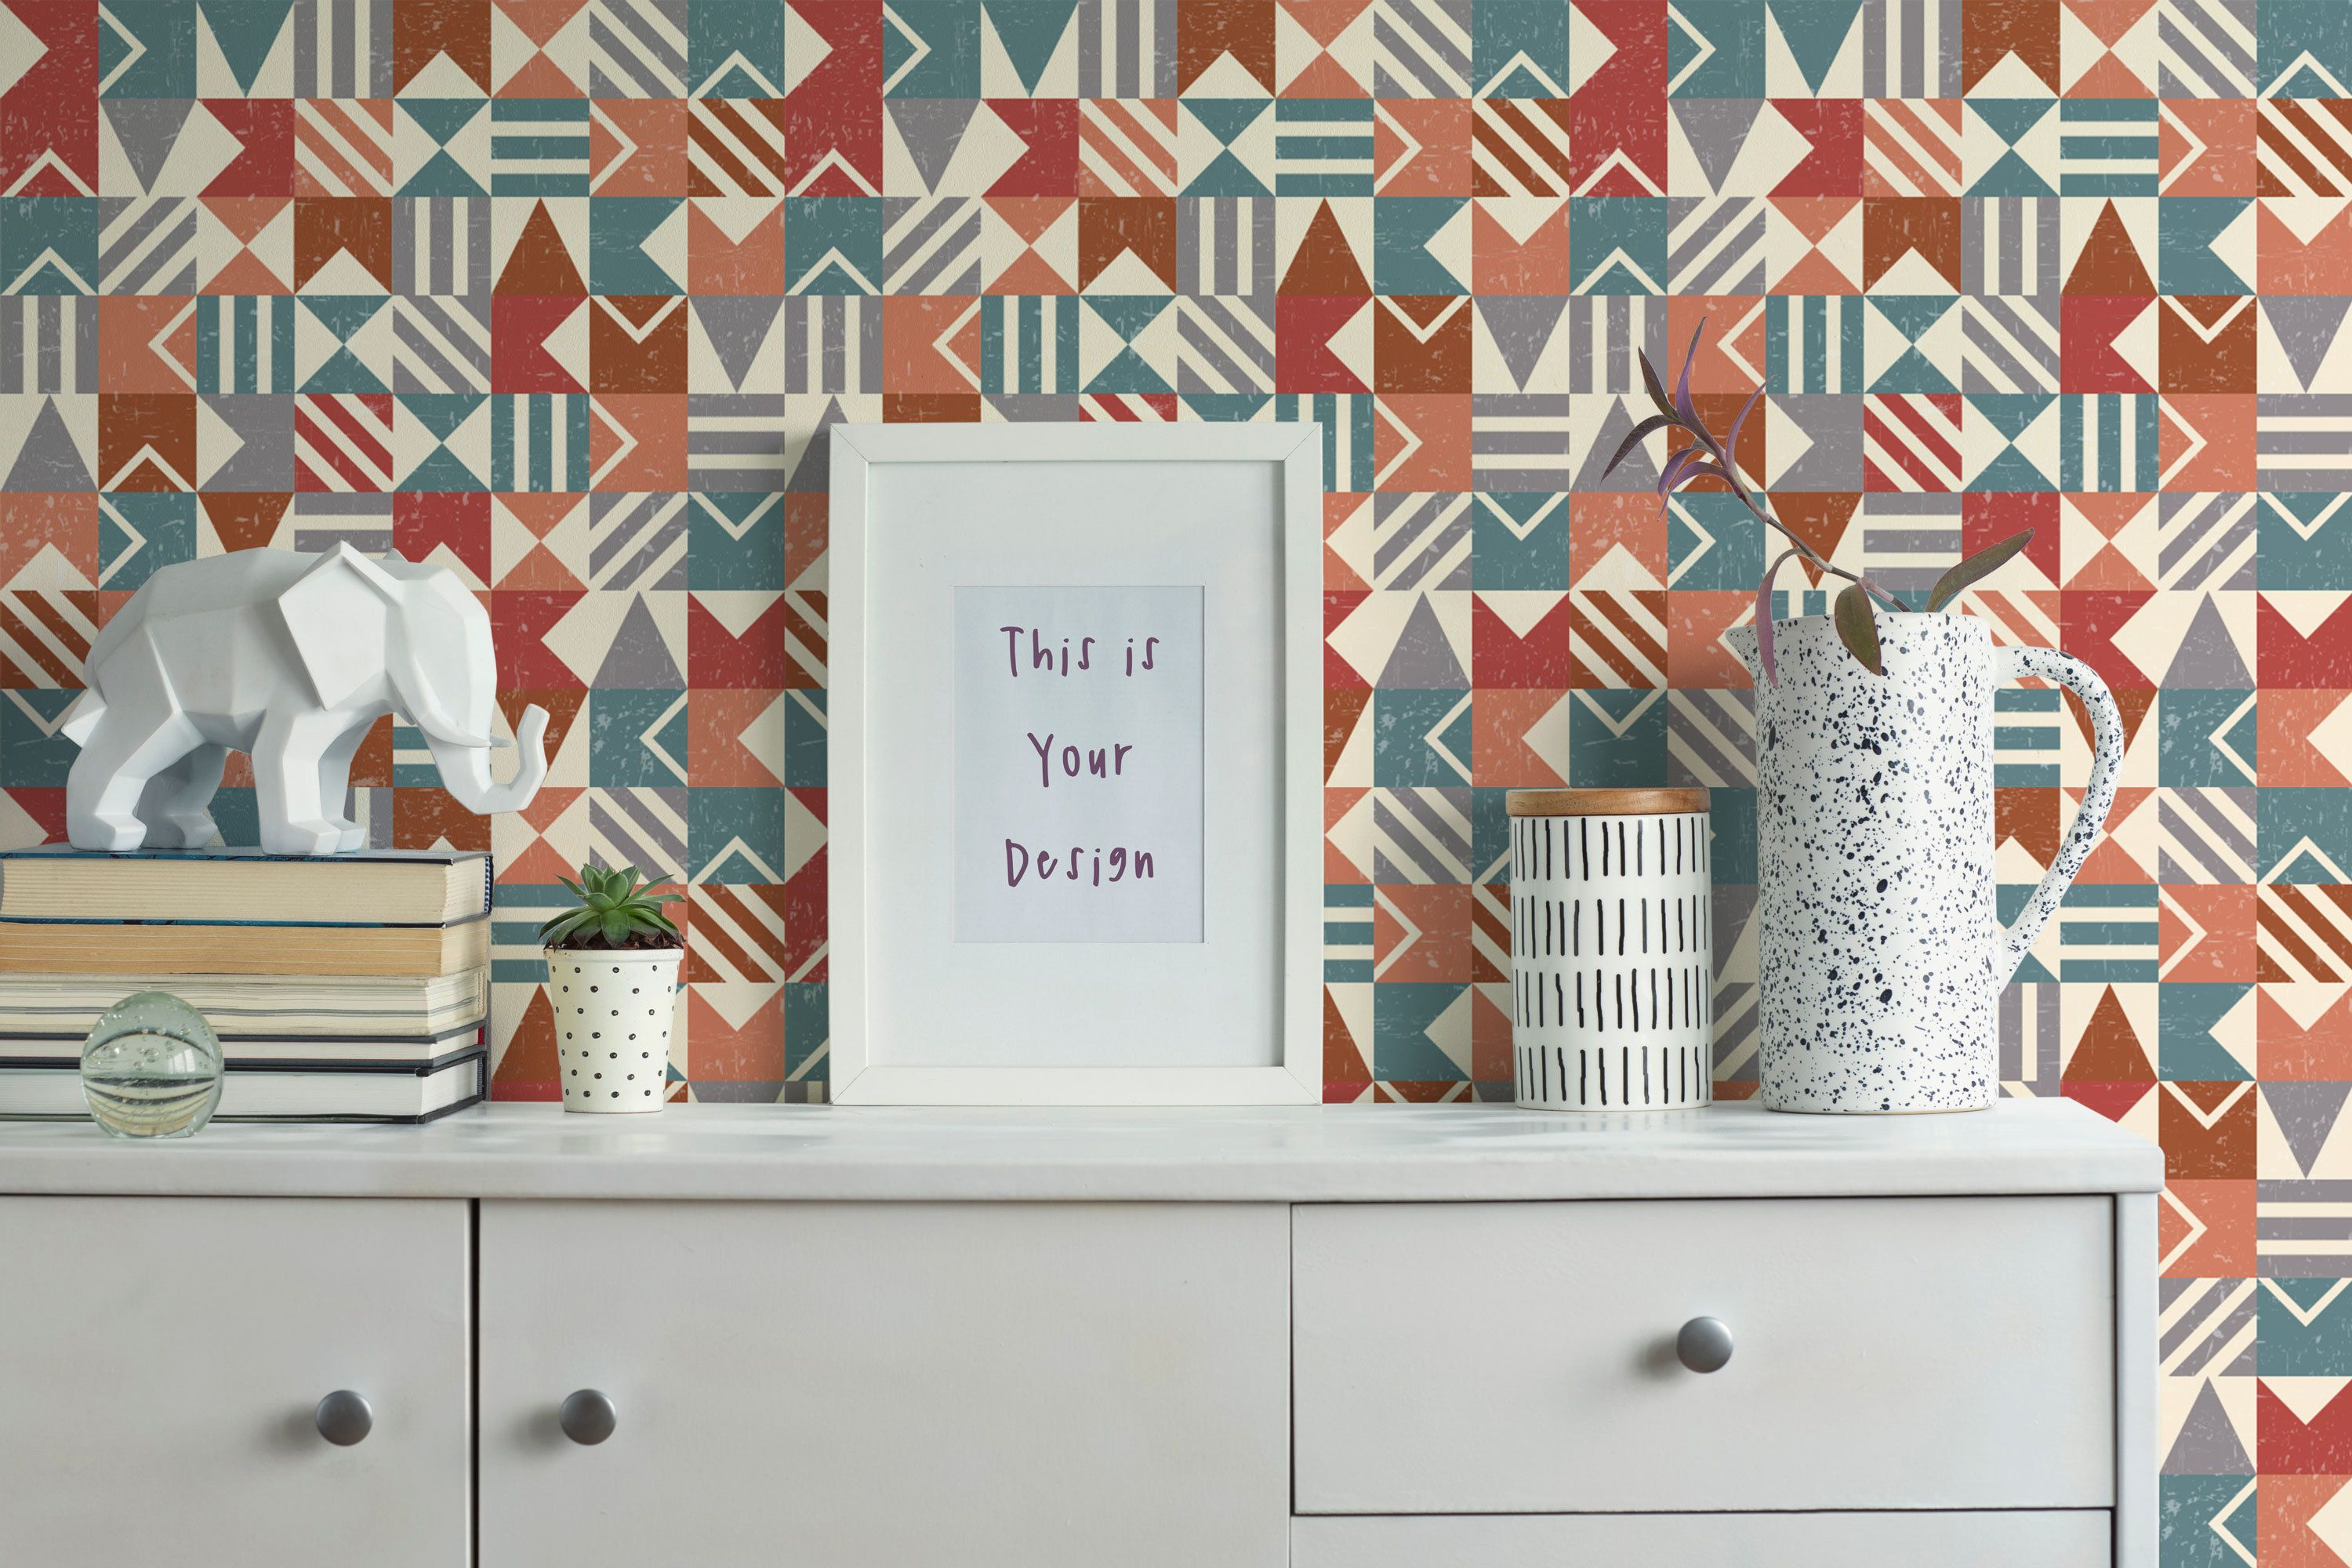 Vintage Peel And Stick Wallpaper Mosaic Wallpaper Etsy In 2020 Peel And Stick Wallpaper Mosaic Wallpaper Geometric Removable Wallpaper